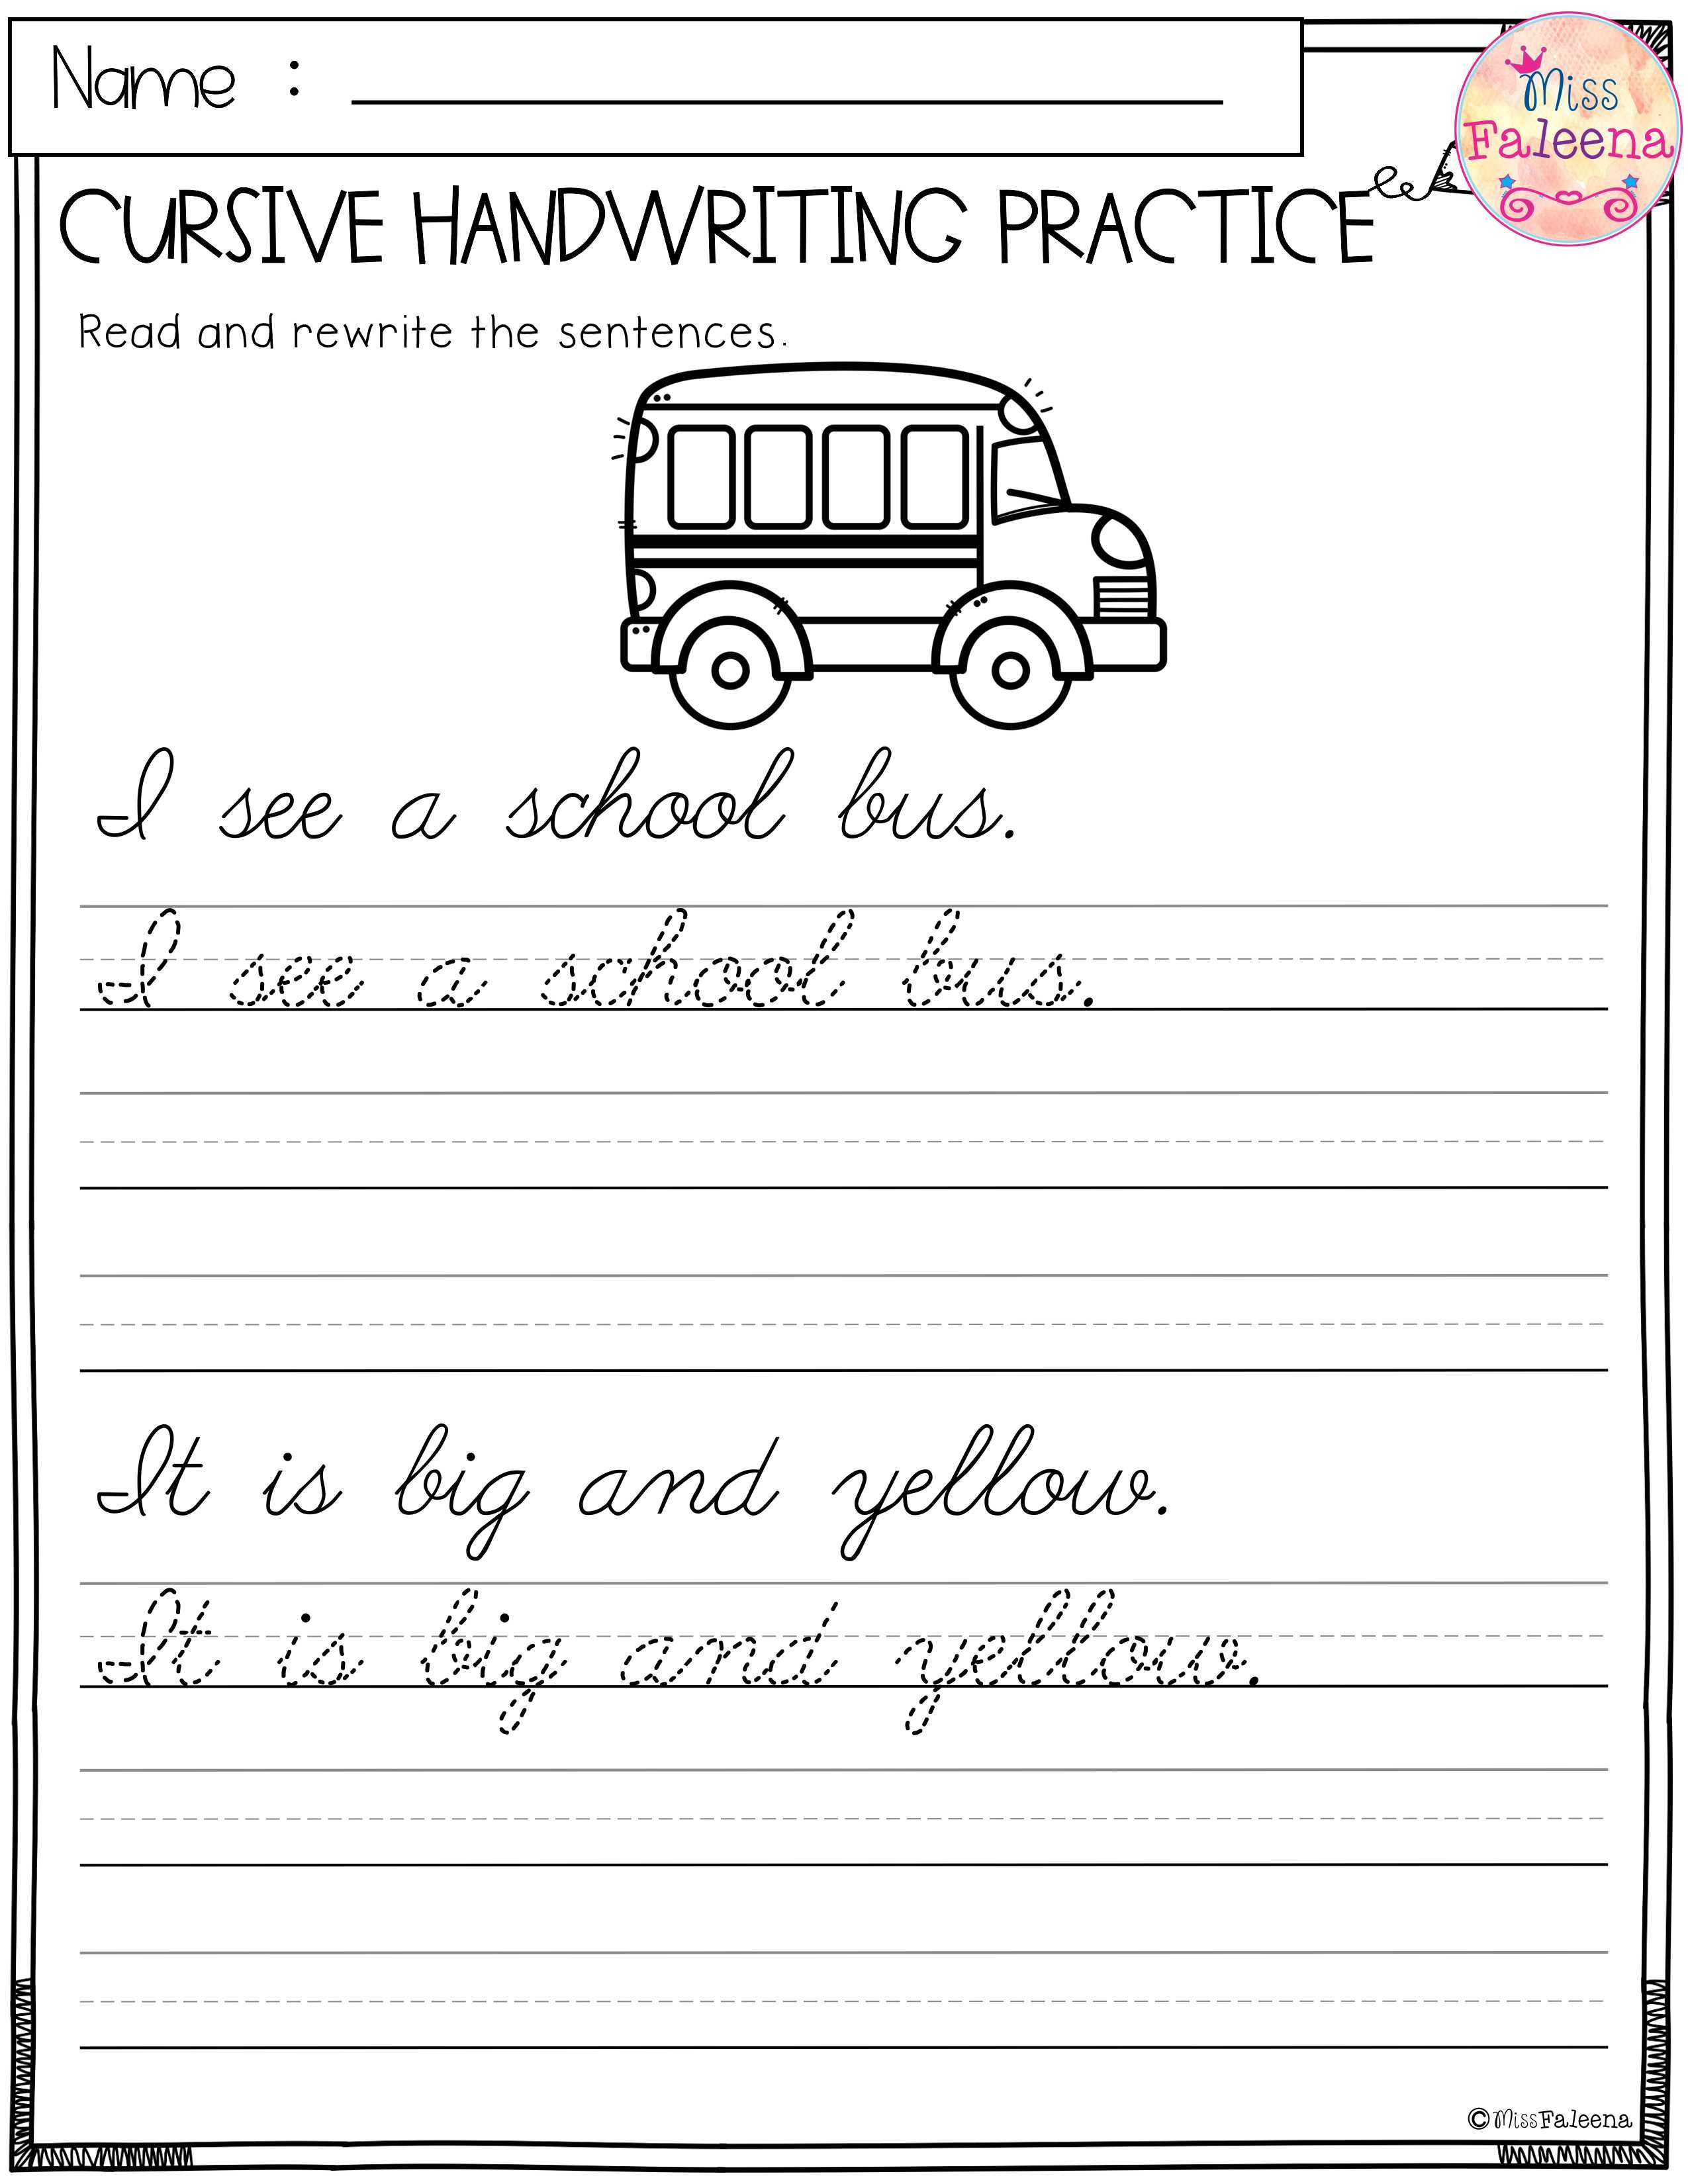 medium resolution of This product has 25 pages of handwriting worksheets. This product will  teach children rea…   Cursive handwriting practice